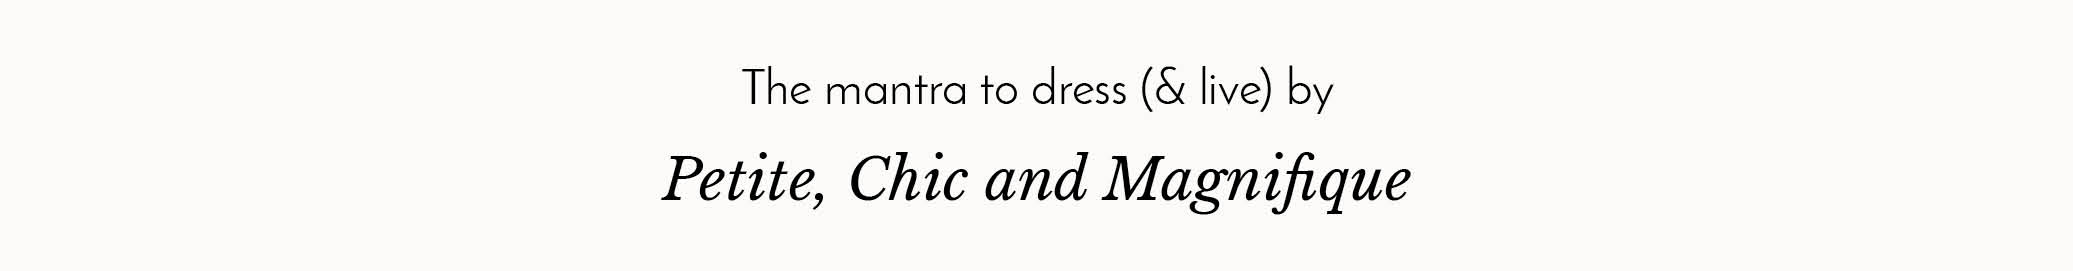 mantra - petite chic magnifique - Petite dresses, style tips, trends, designers, celebrities and beautiful clothing for petite women.The ultimate petite fashion resource. :: BombPetite.com